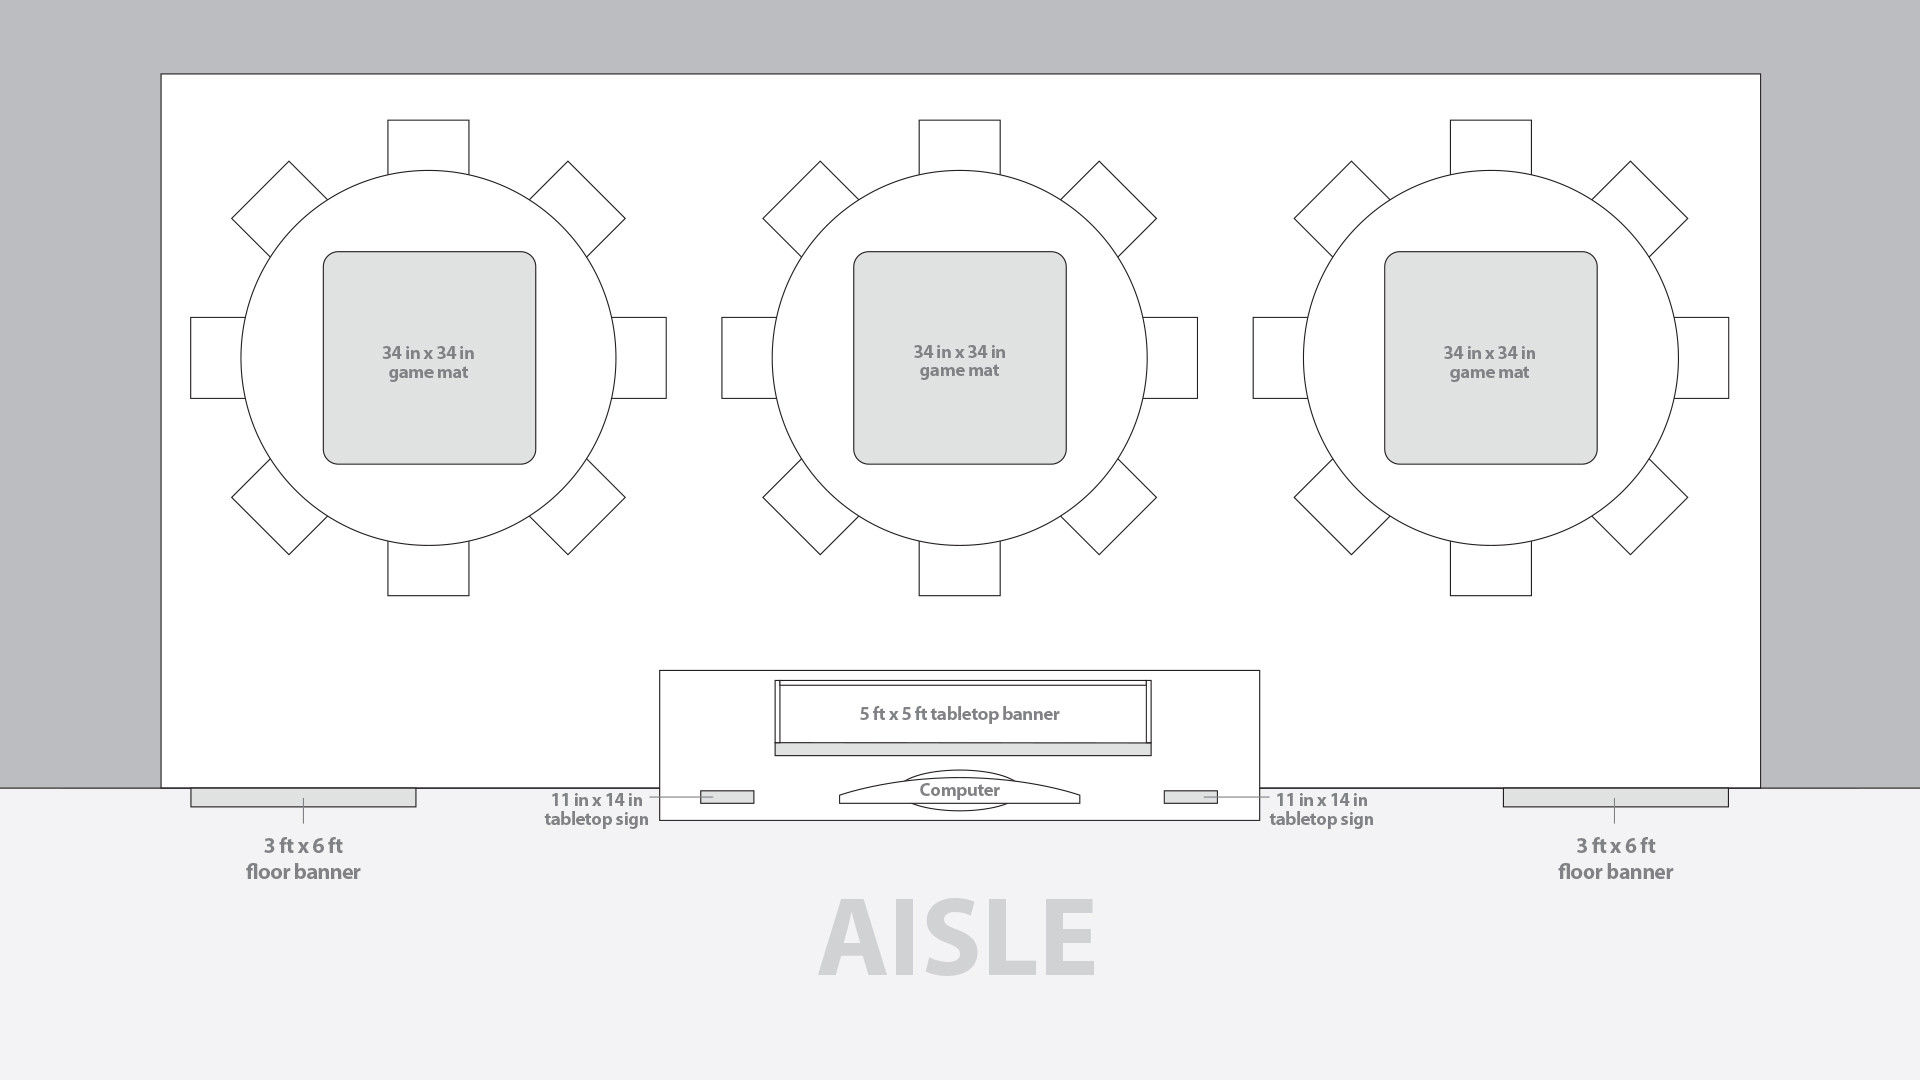 Event Booth Floorplan (Top View)